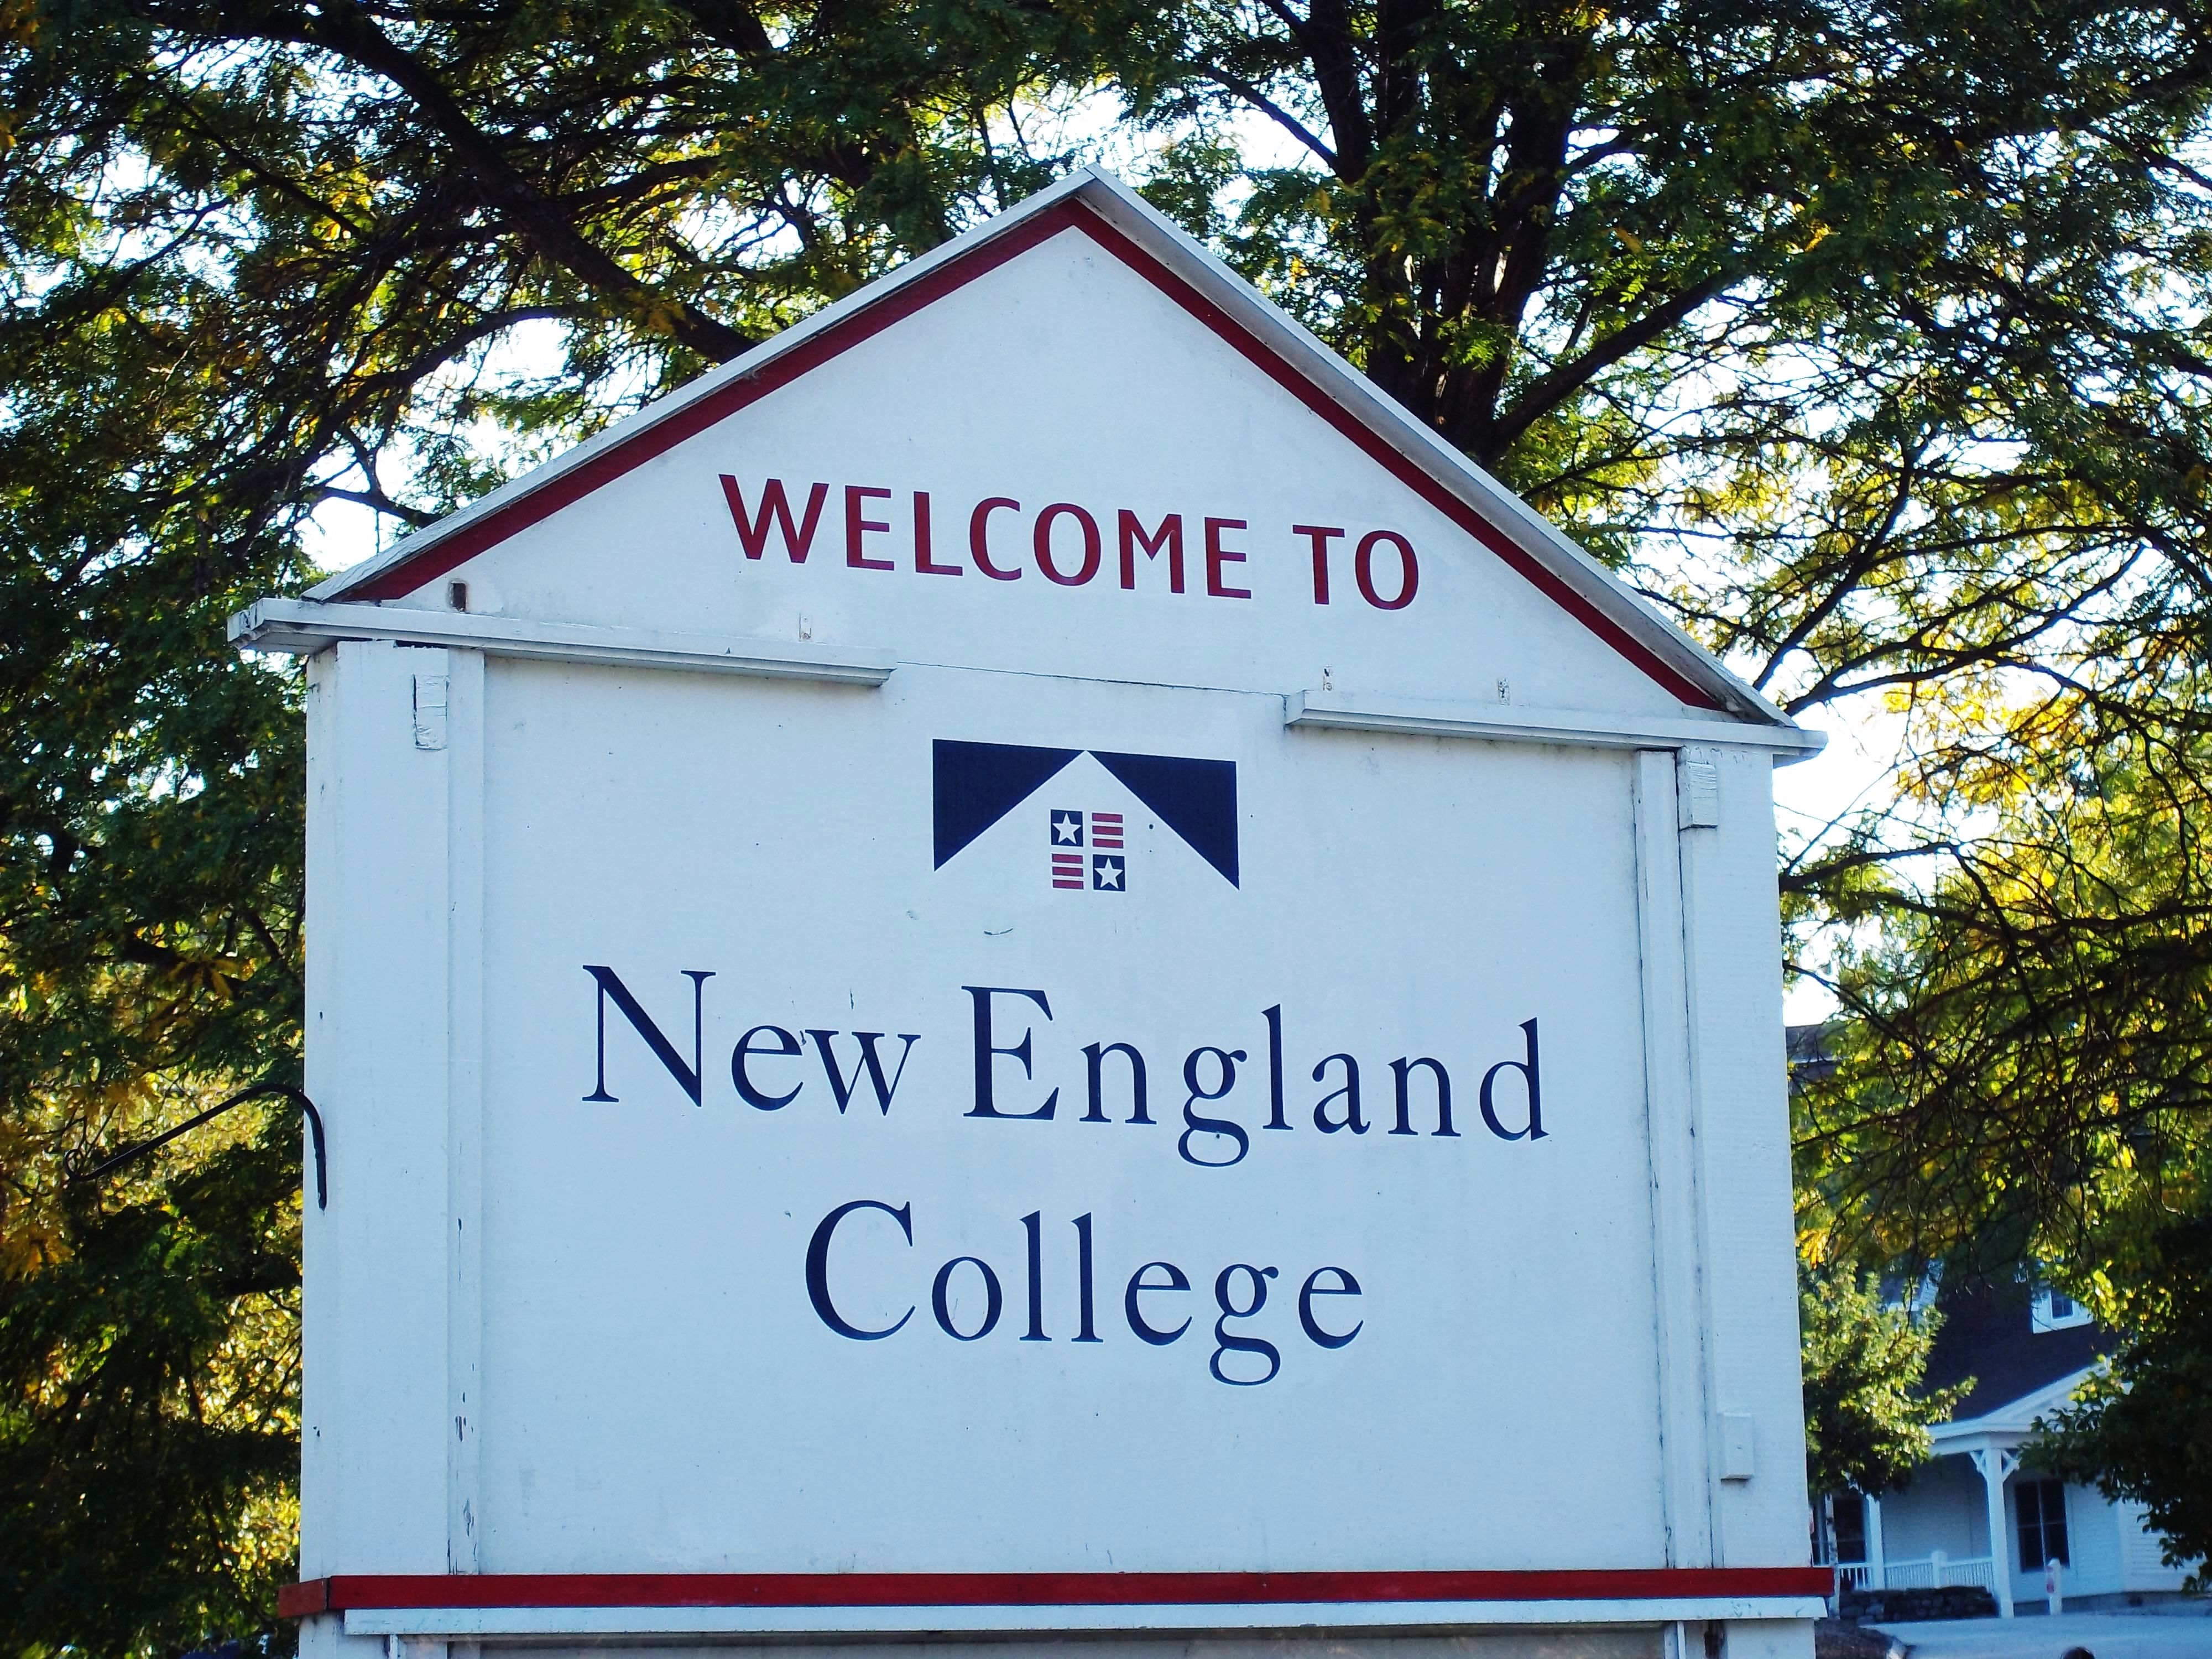 Welcome to New England College